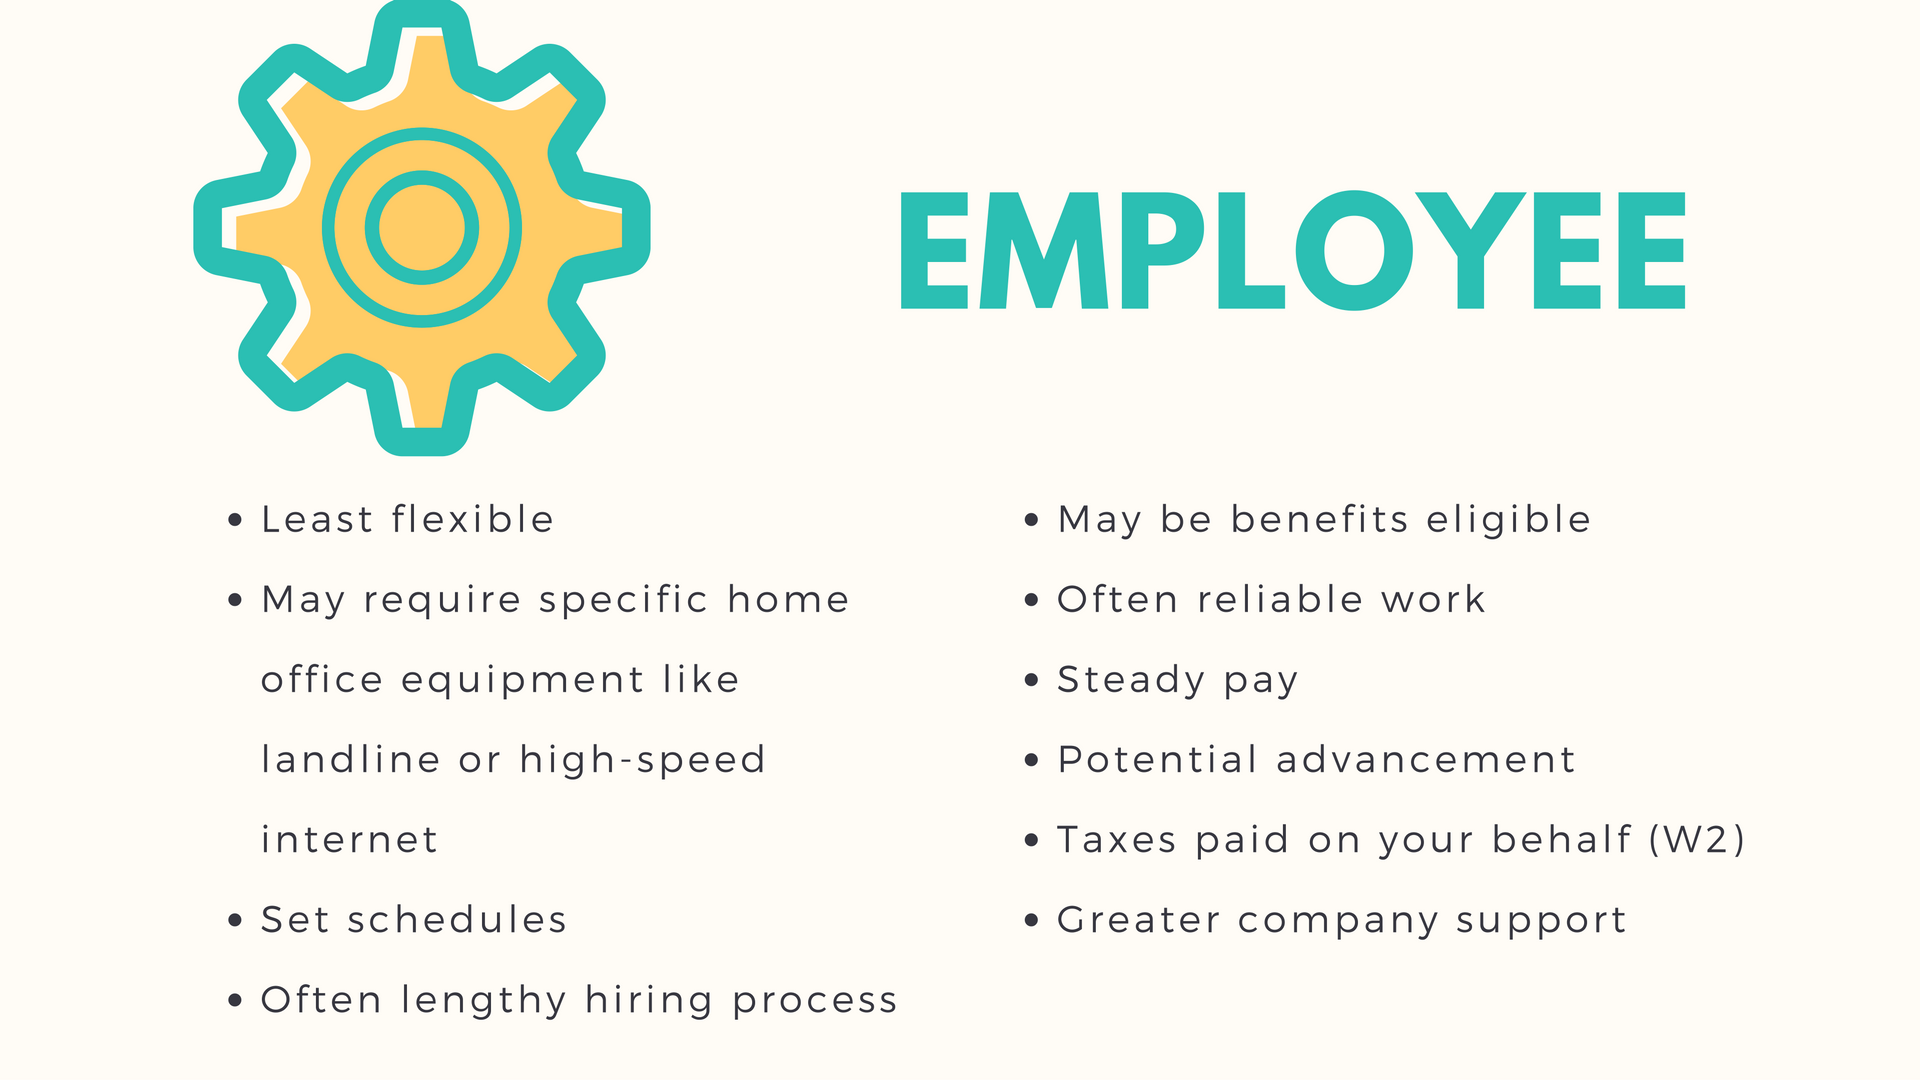 Narrow your work from home job search. Is working as an employee right for you? Here are the pros and cons.